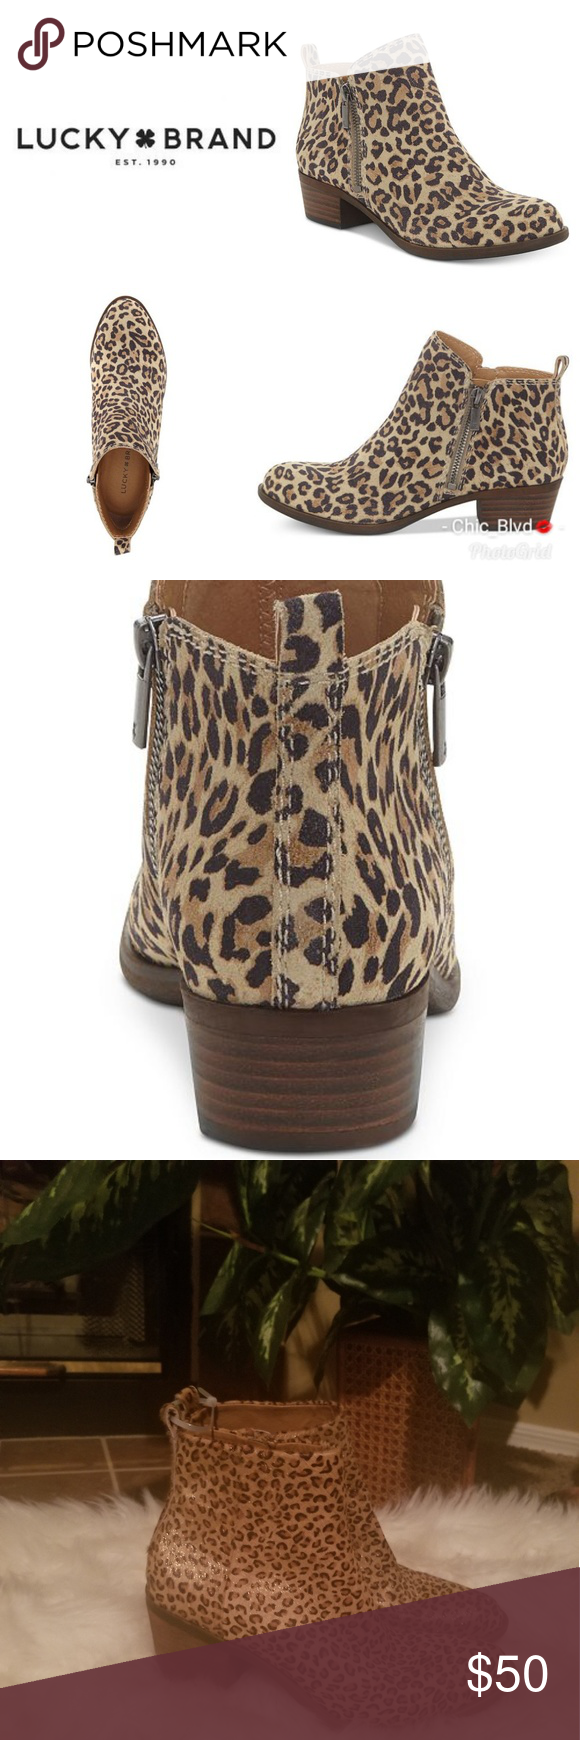 0999f09bcf40 Lucky Brand Basel Cheetah Print Booties Pair them with just about anything  and always